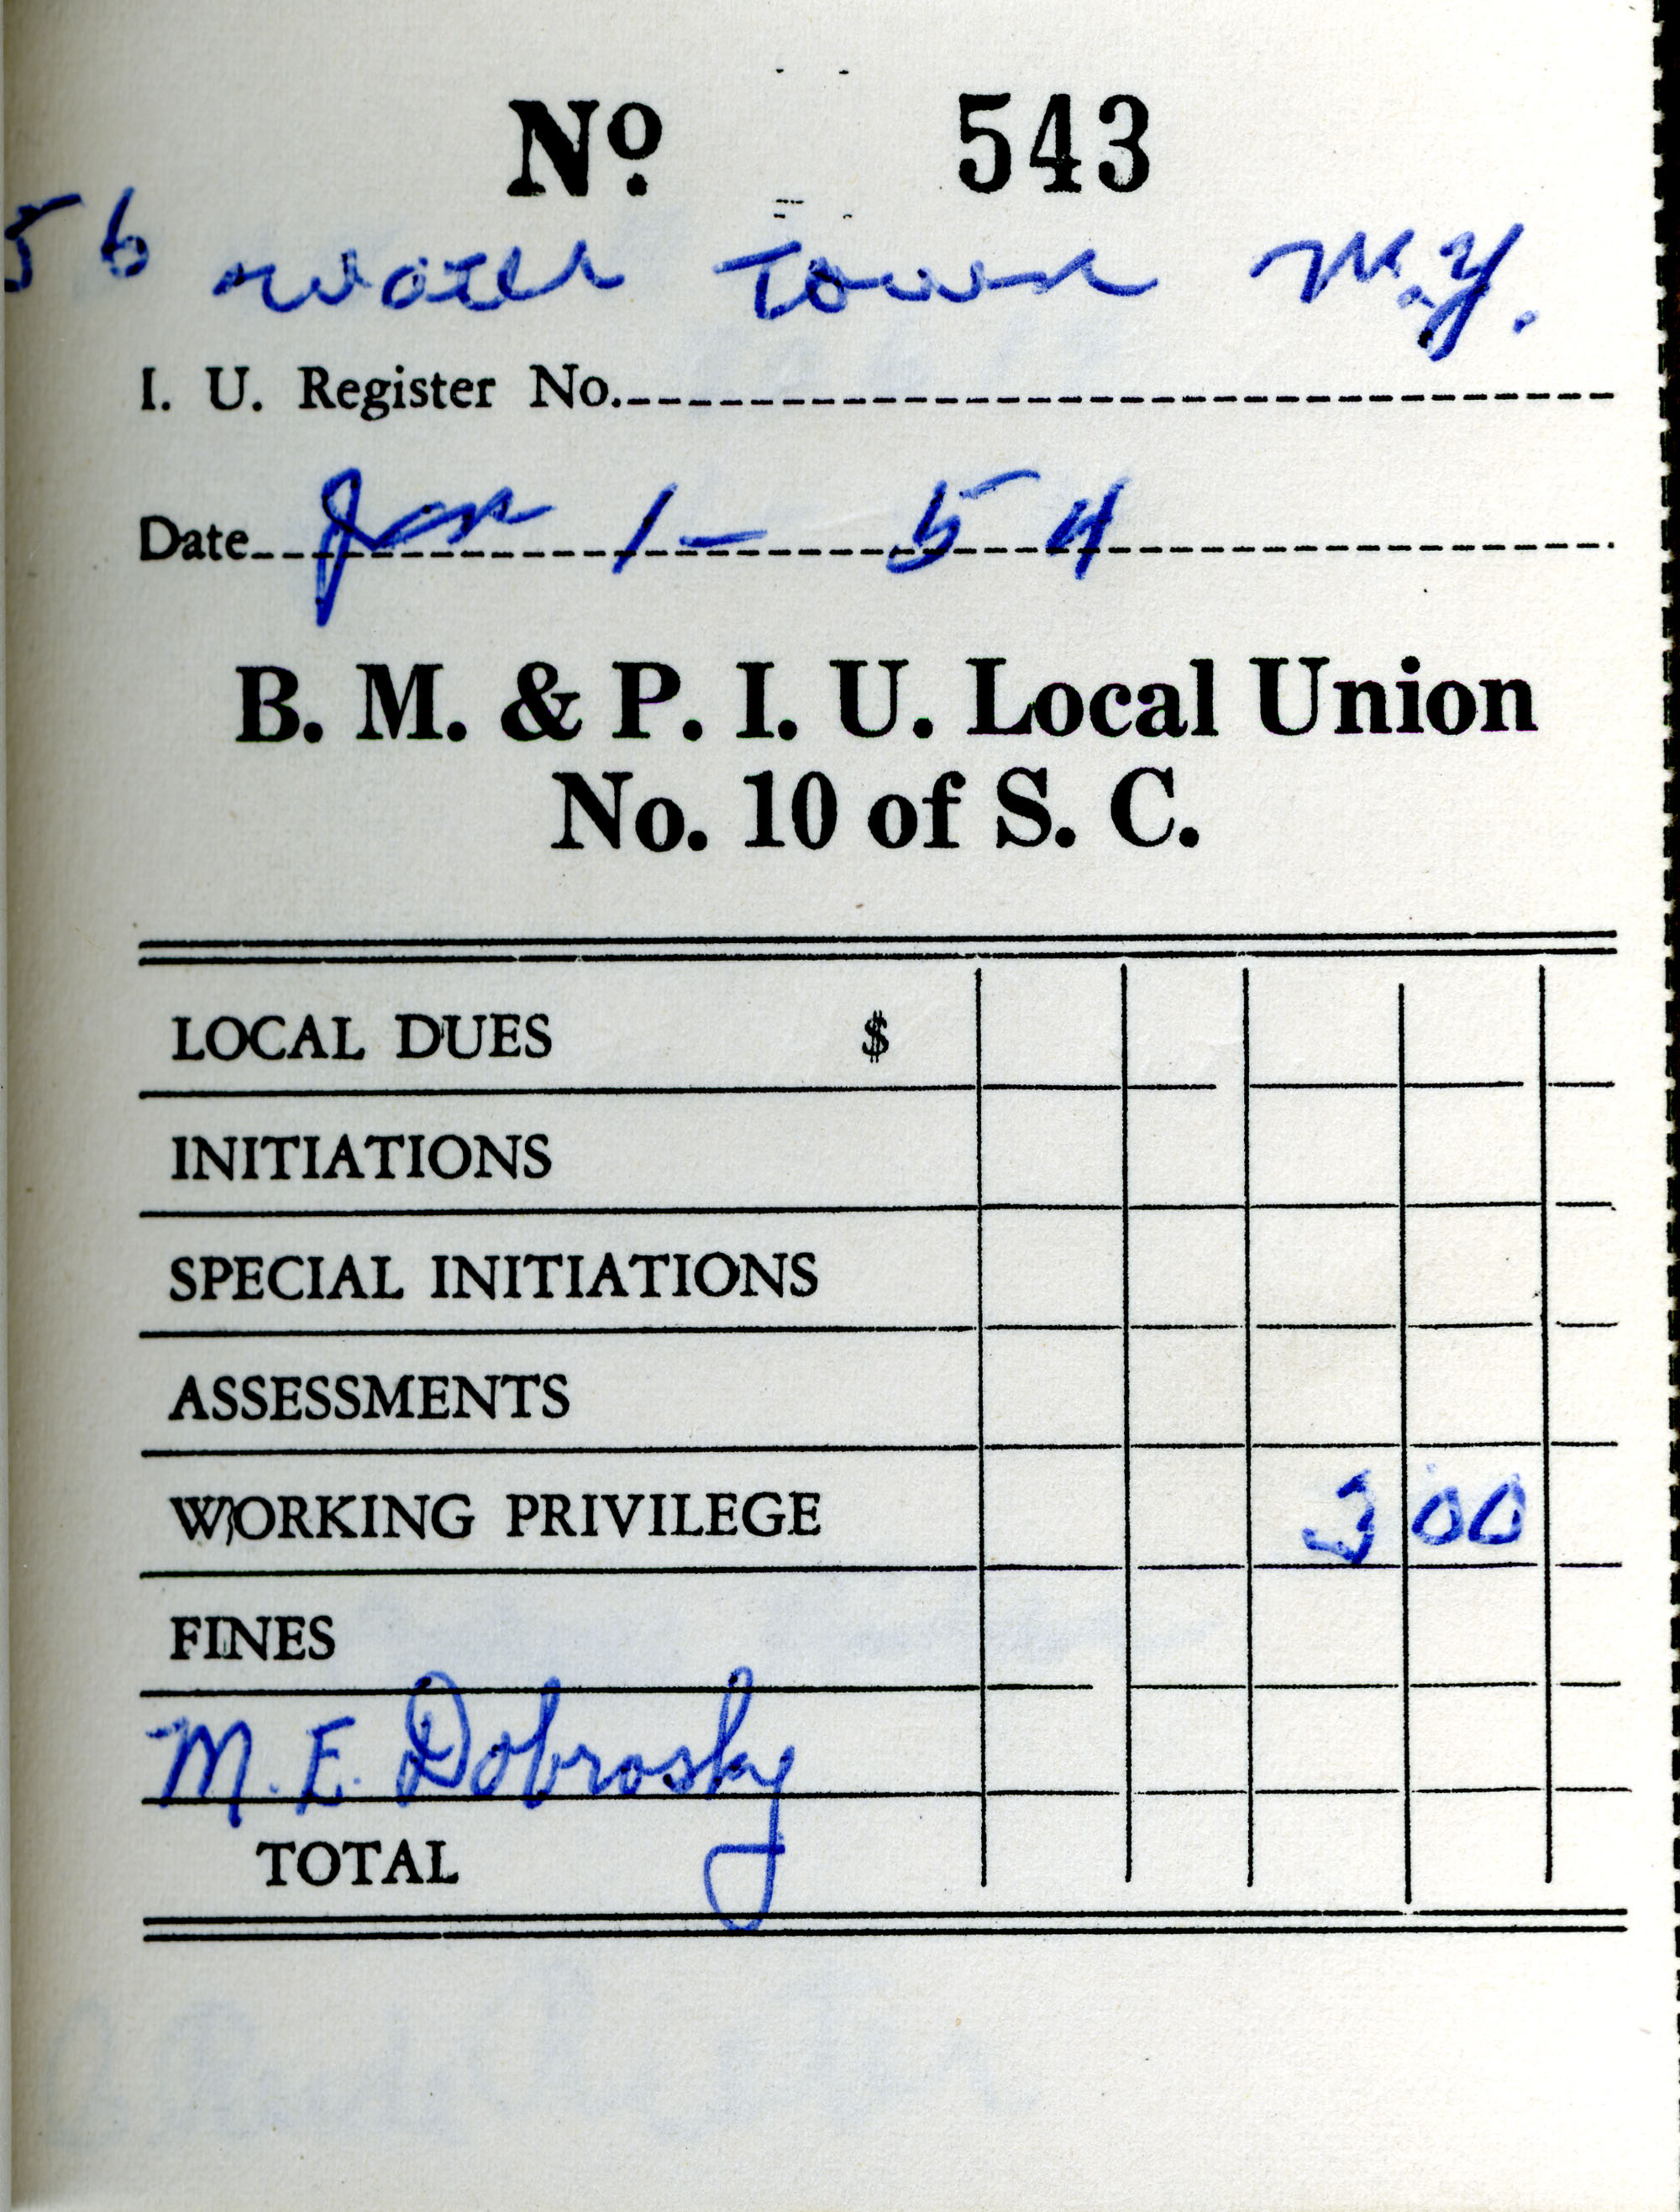 Receipt Book 2, Page 38